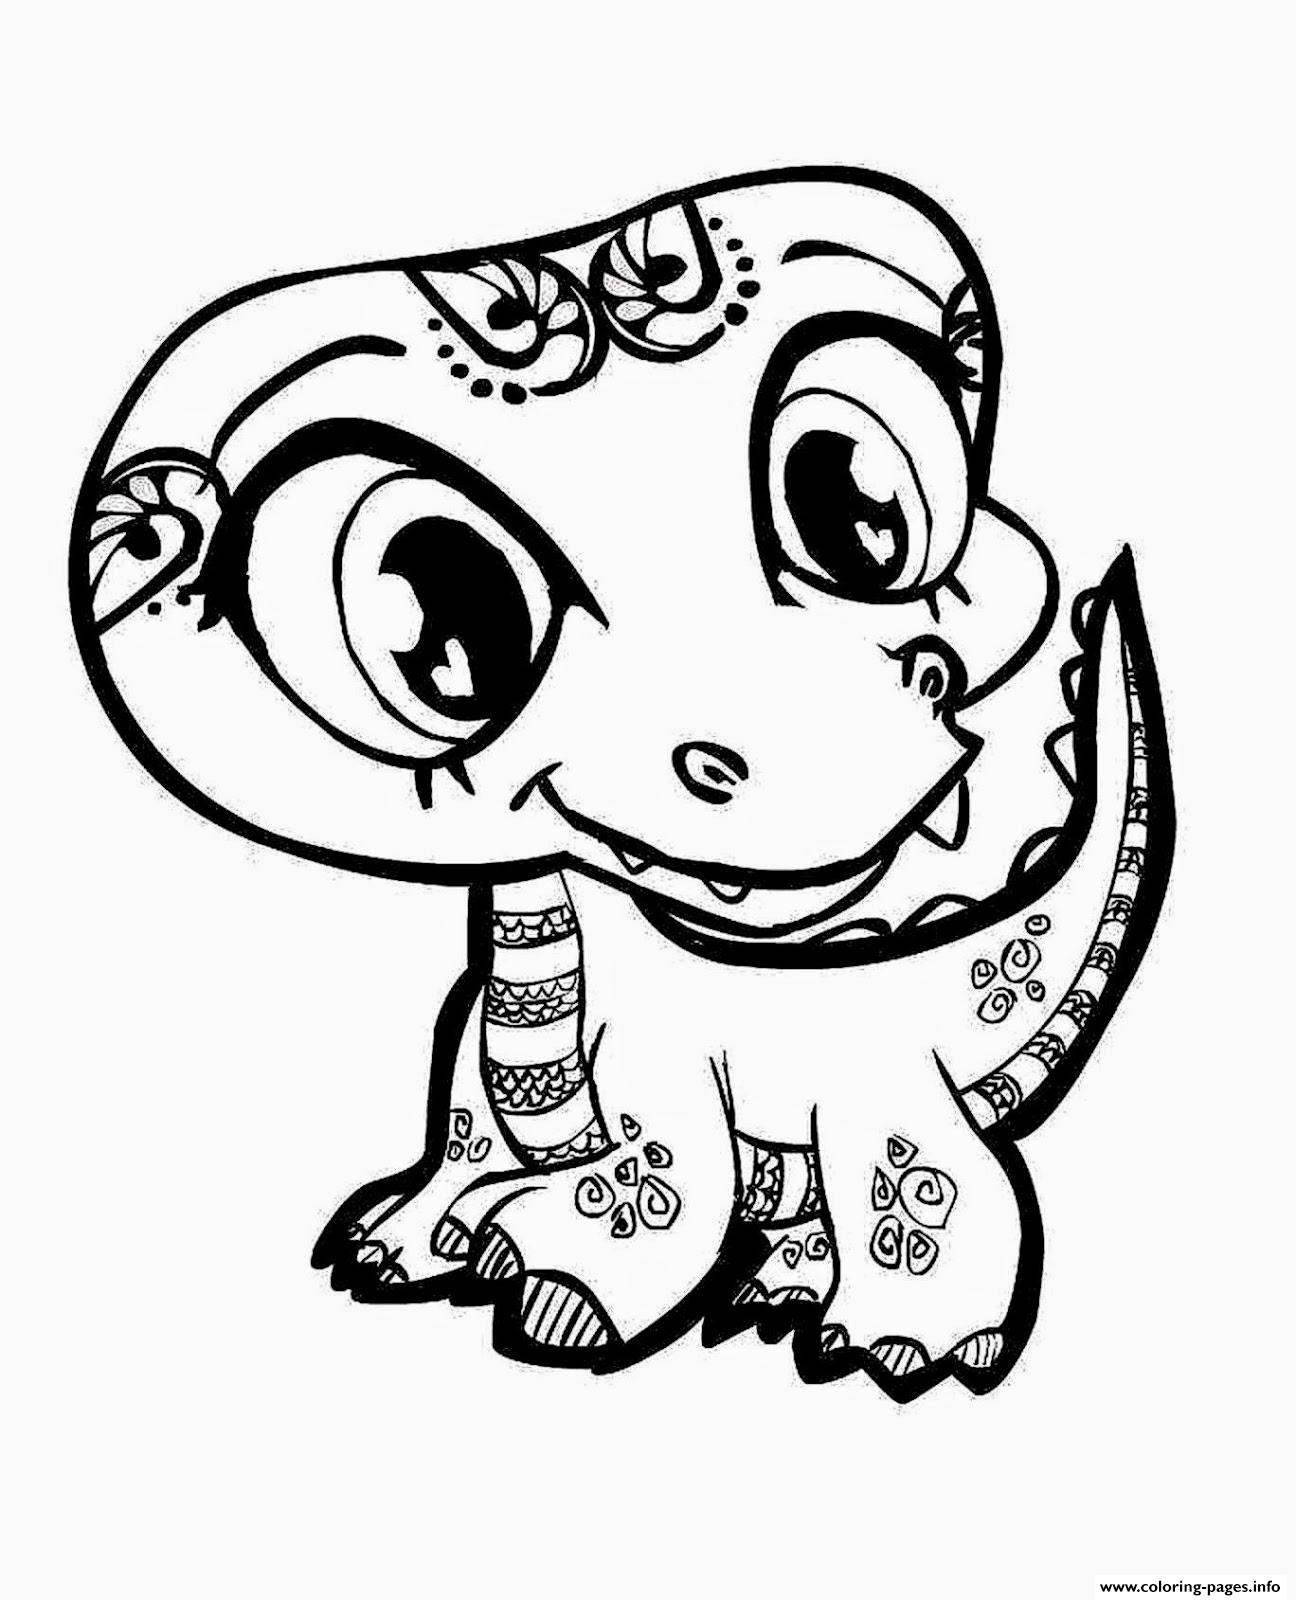 dinosaur pictures to colour in baby dinosaur coloring pages for preschoolers activity pictures to dinosaur in colour